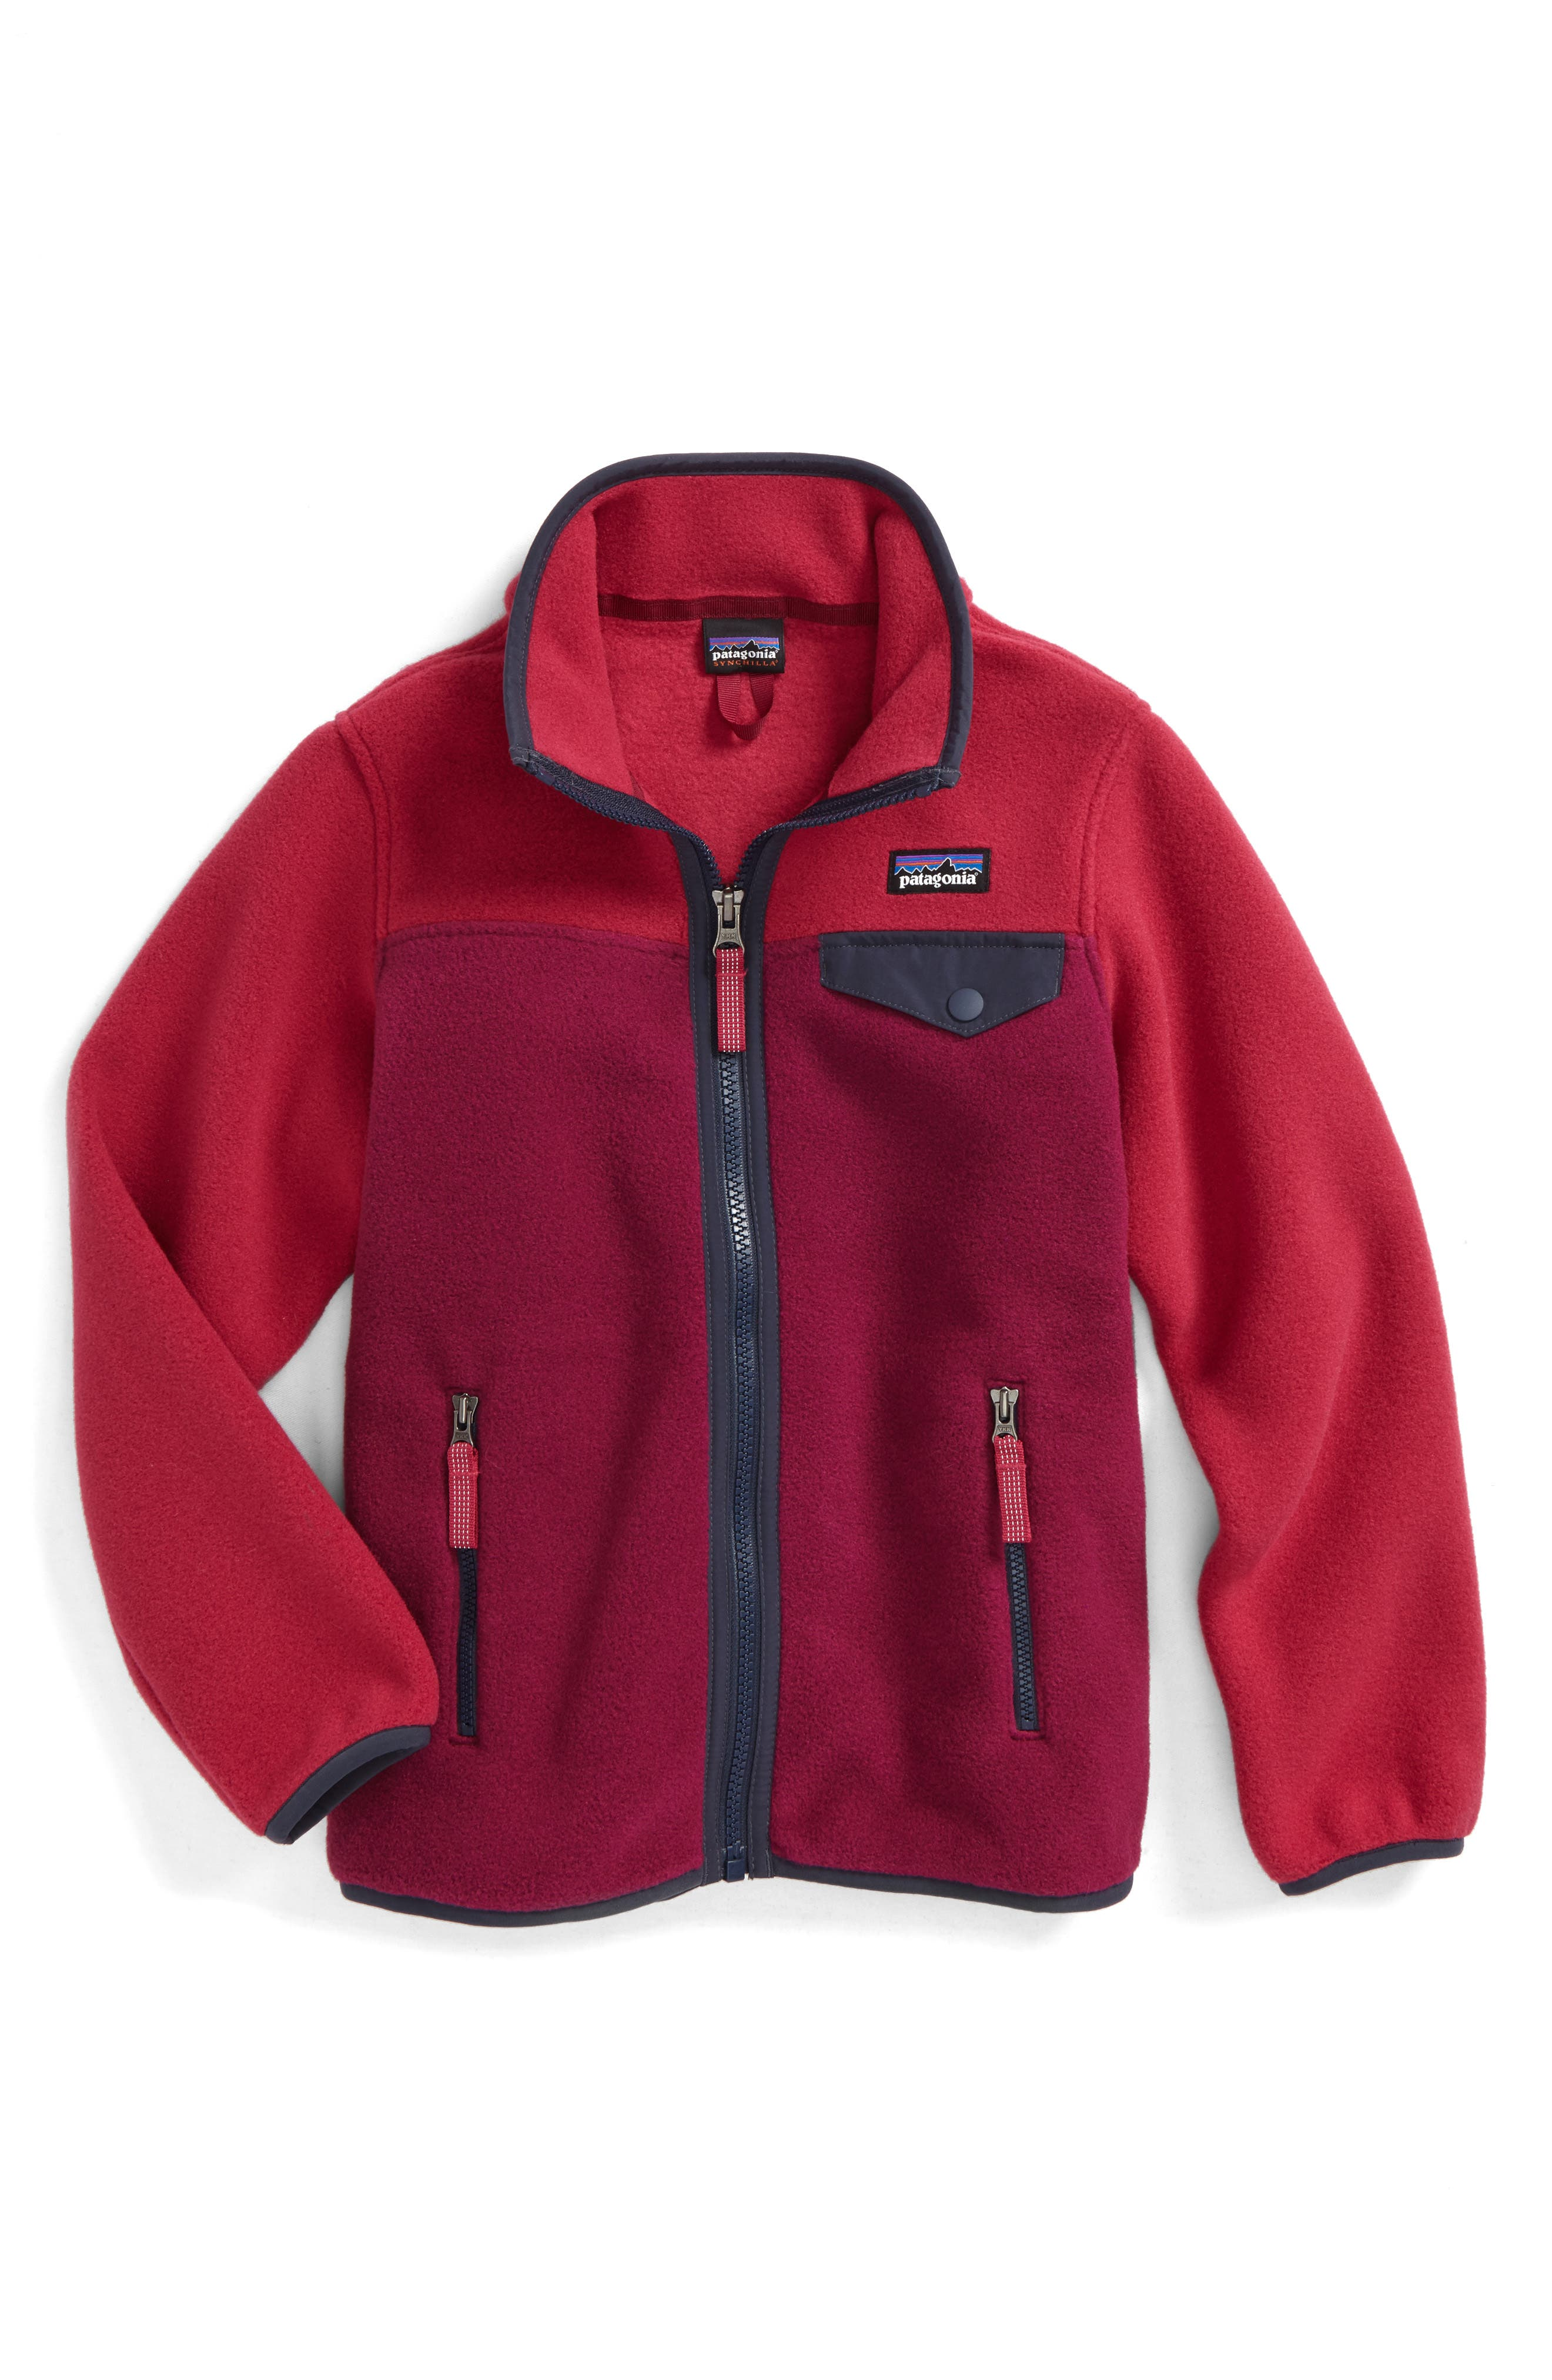 Alternate Image 1 Selected - Patagonia Synchilla® Snap-T® Fleece Jacket (Little Girls & Big Girls)